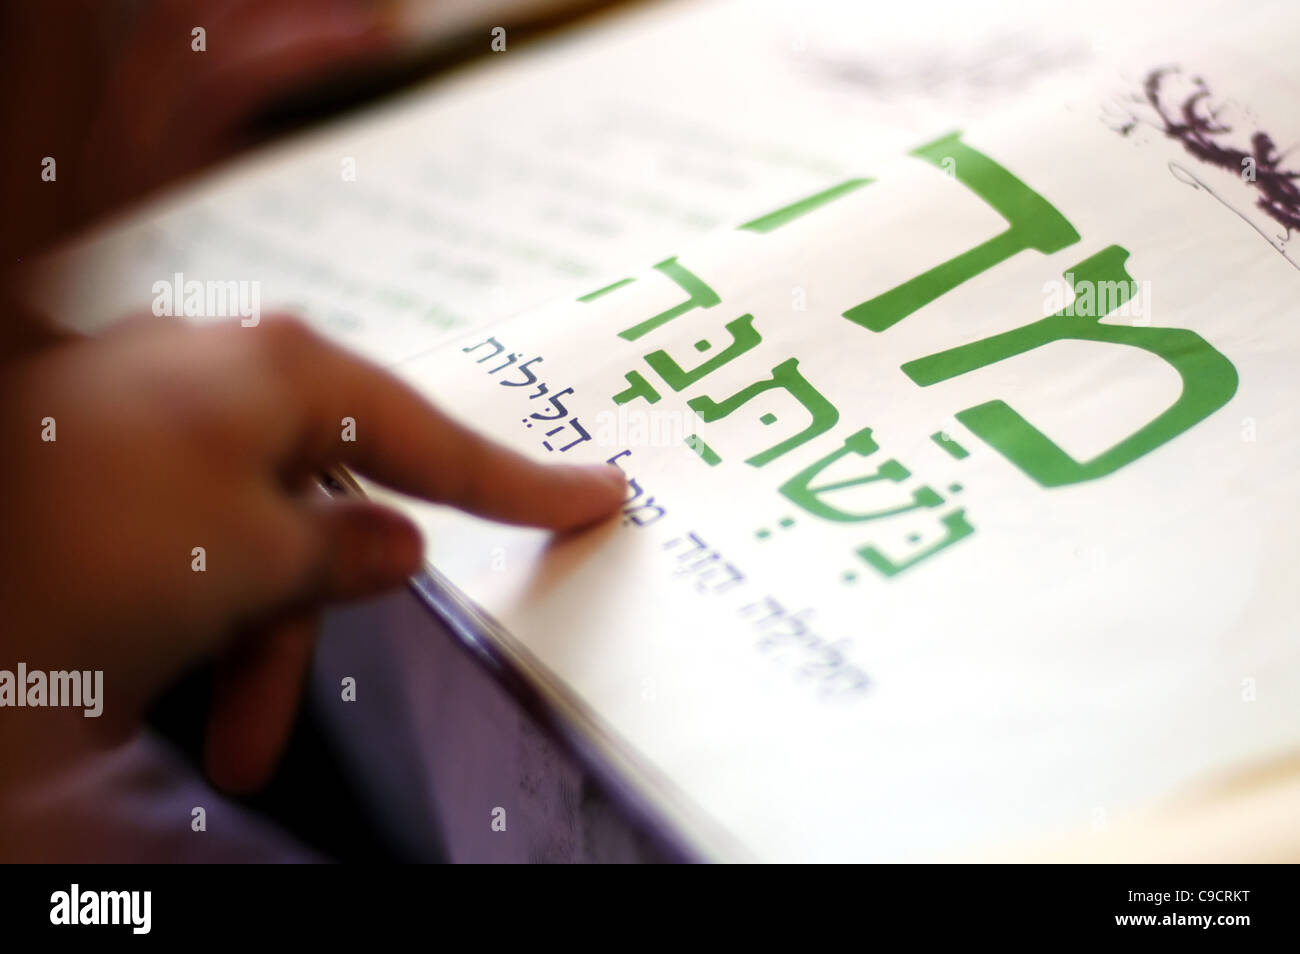 A woman reads the Haggadah (traditional text) during blessings for the Jewish holiday of Passover Dinner - Stock Image